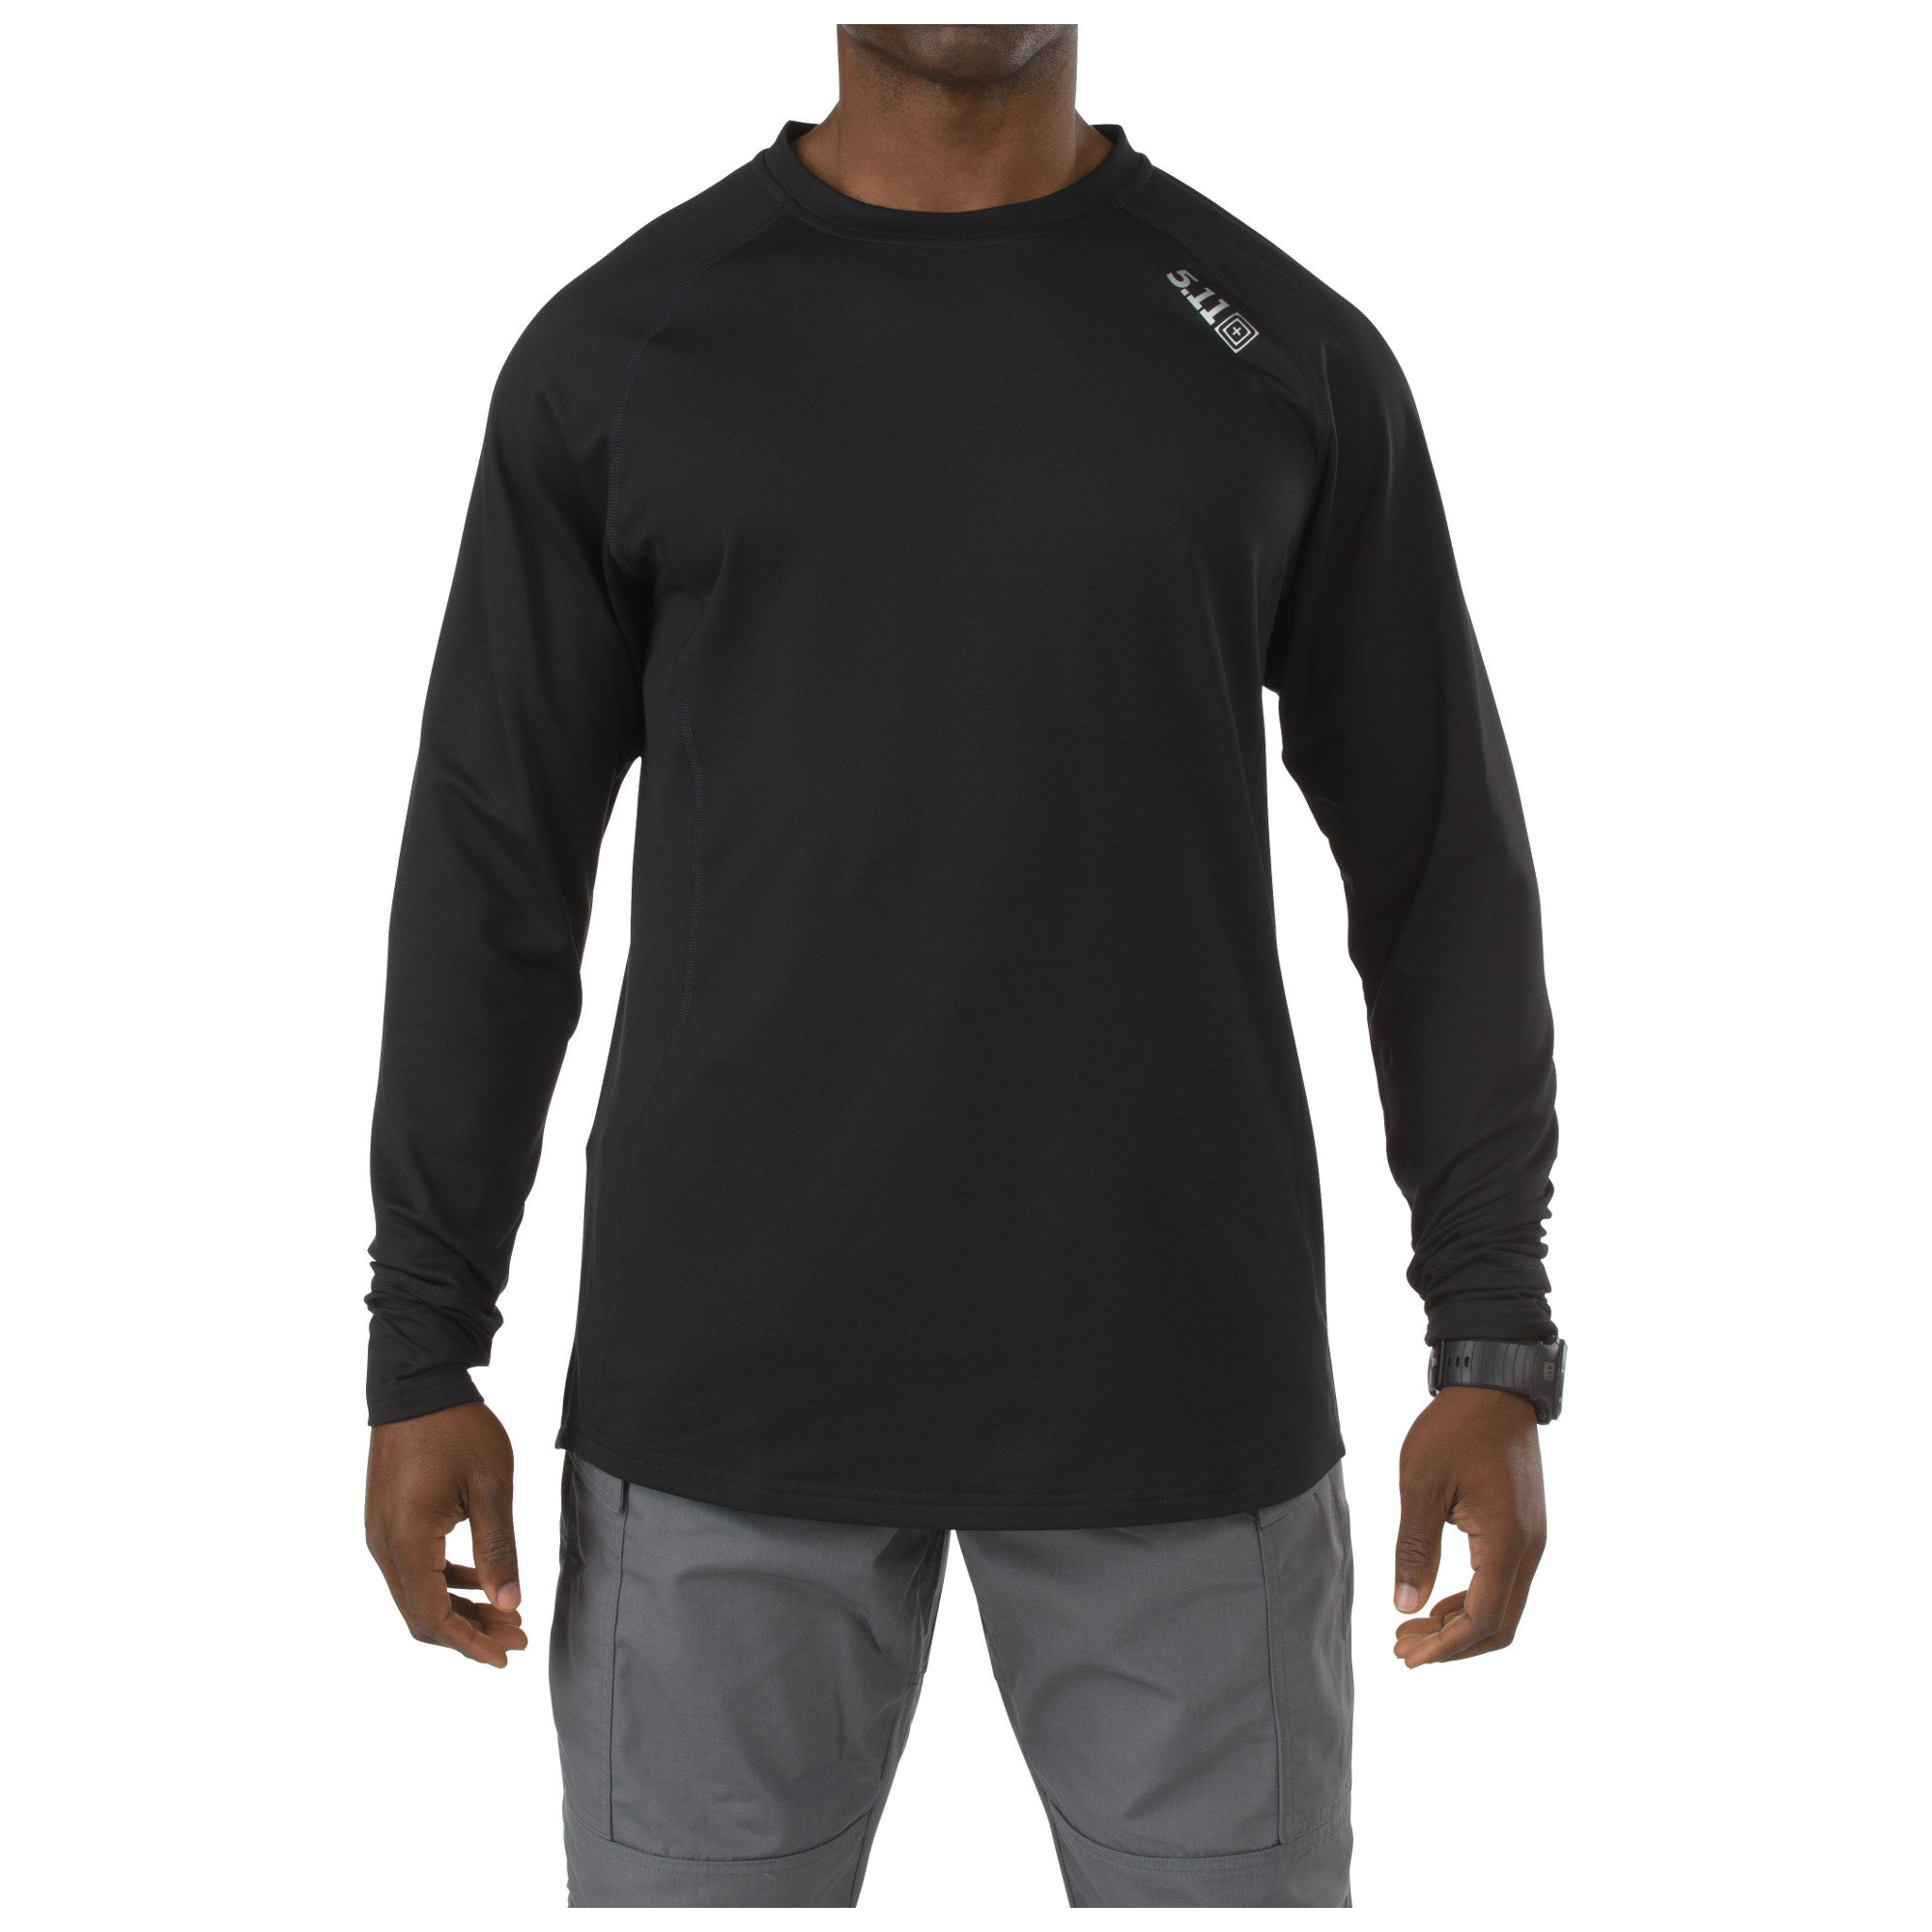 5.11 Mens Sub Z Crew Long Sleeve 40148